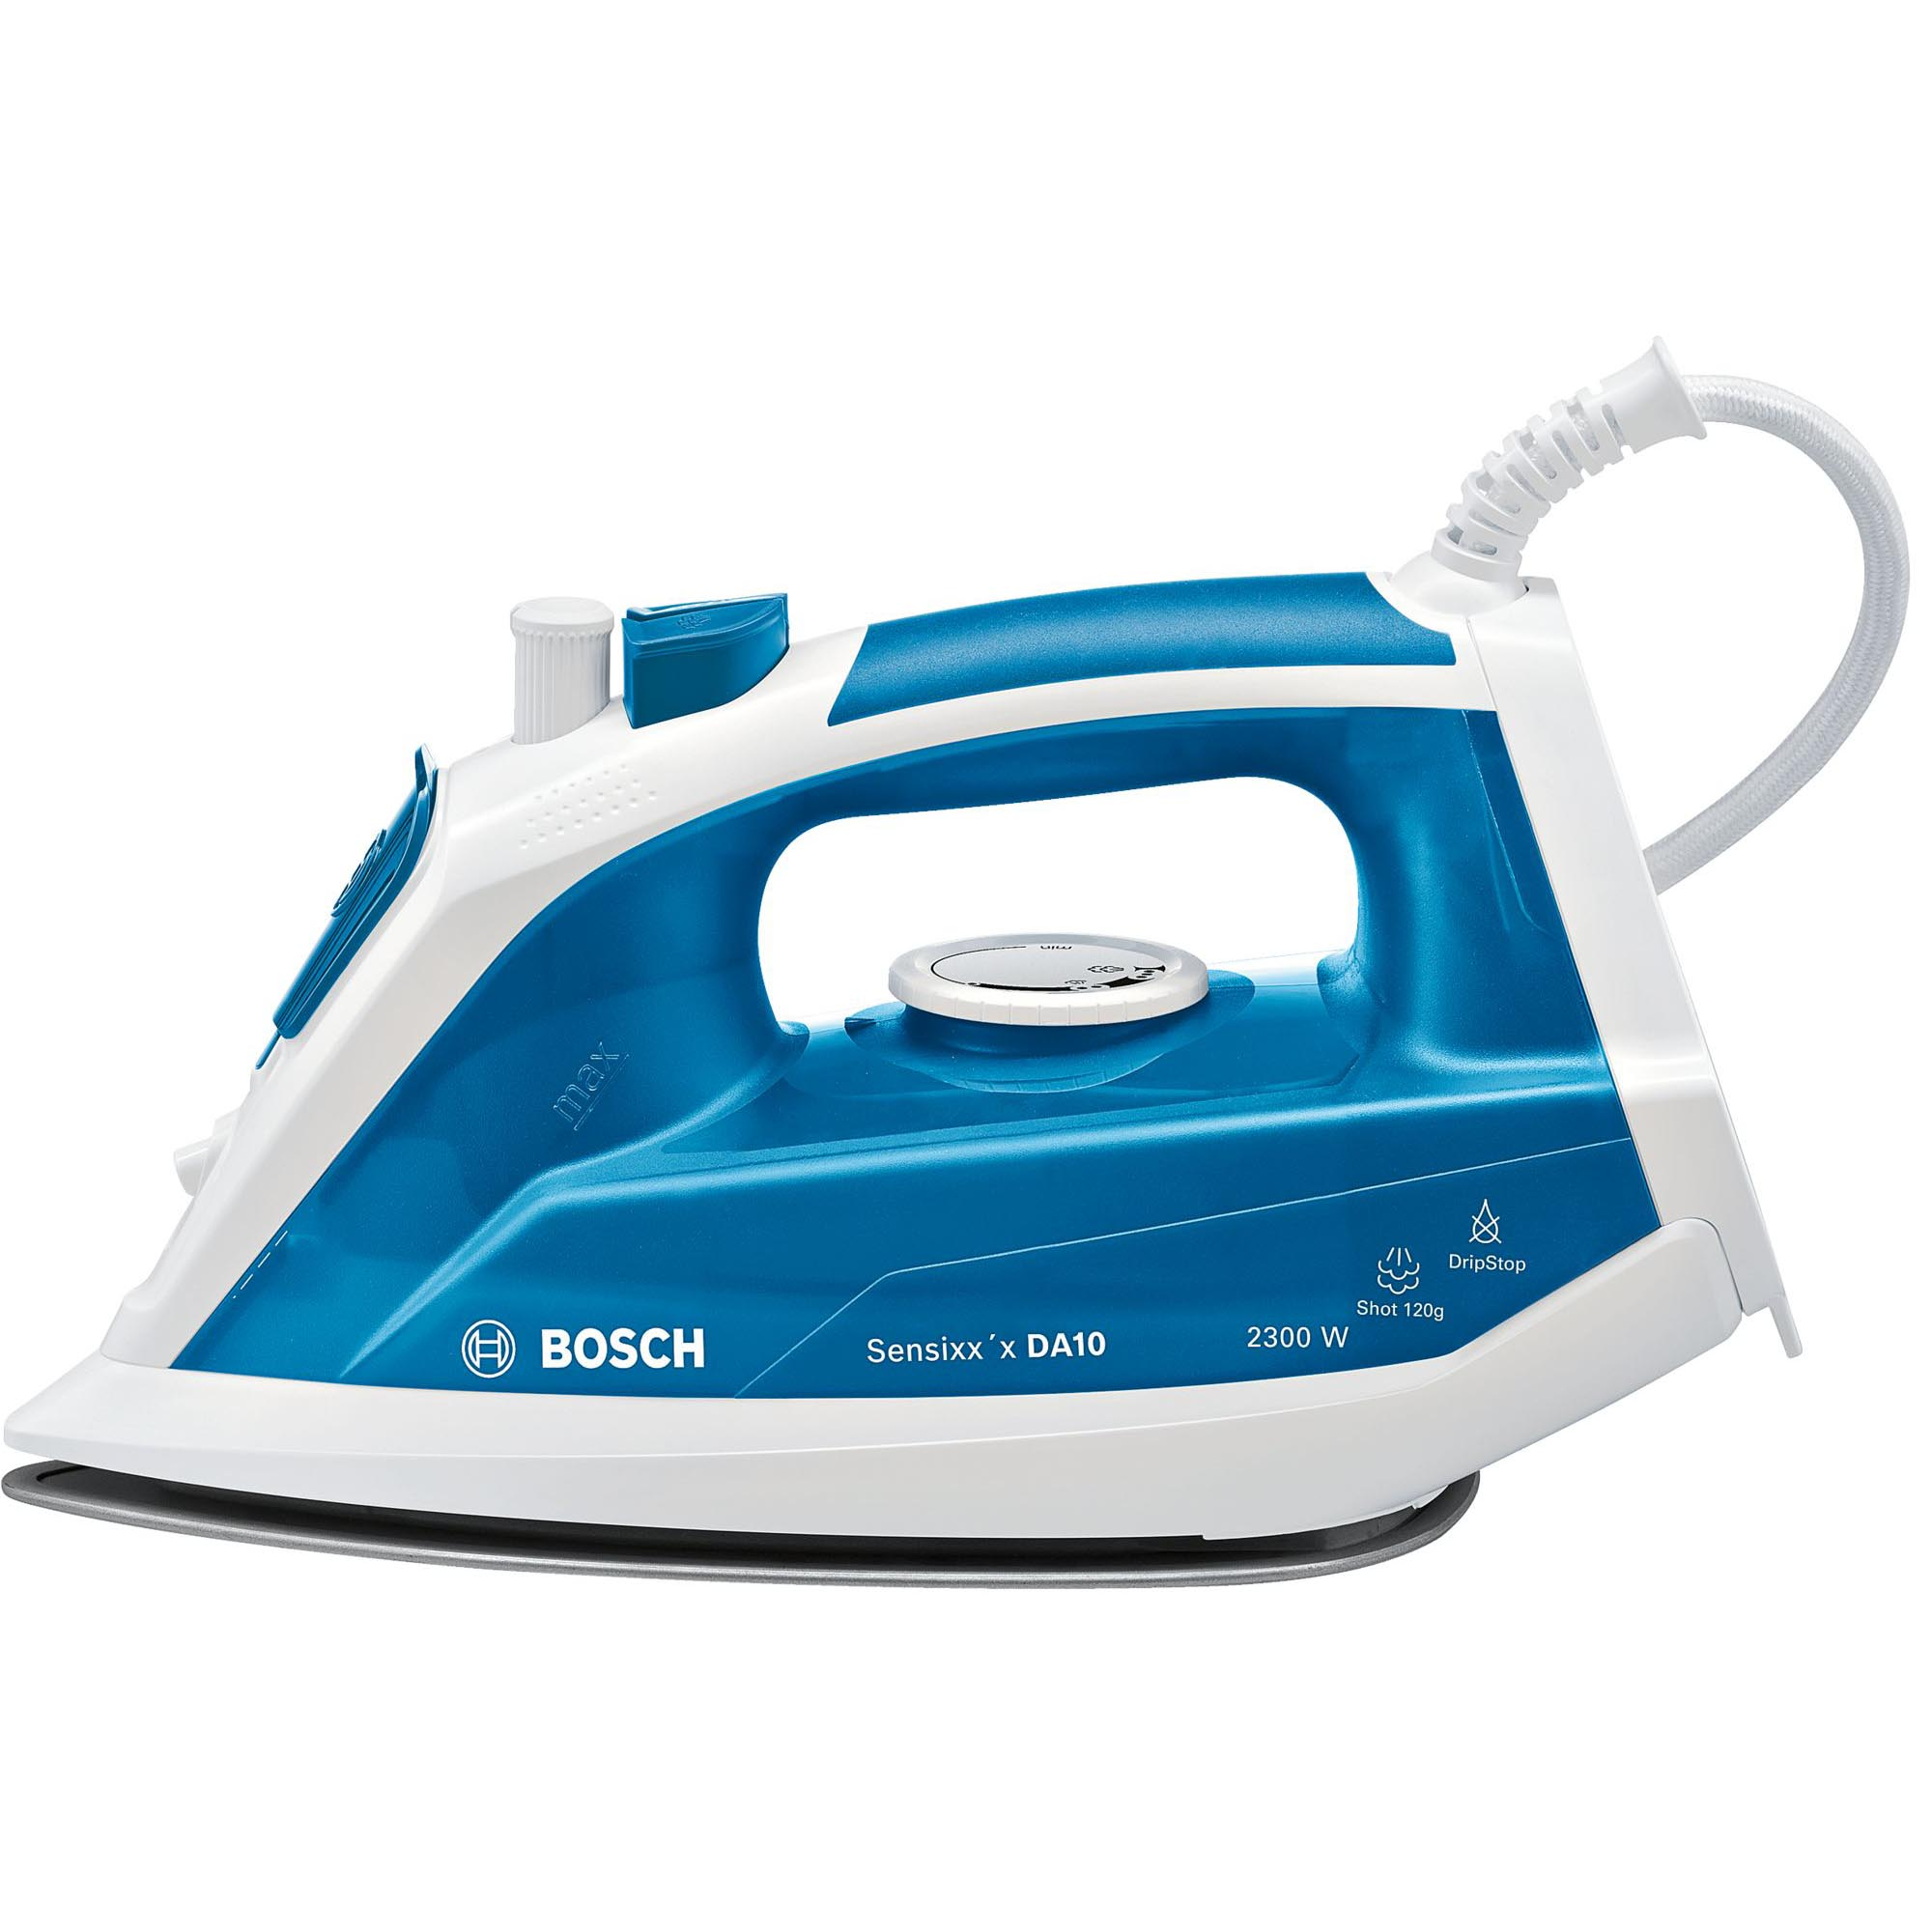 Ironing - CMC Electric - Buy Electrical Appliances in Cyprus